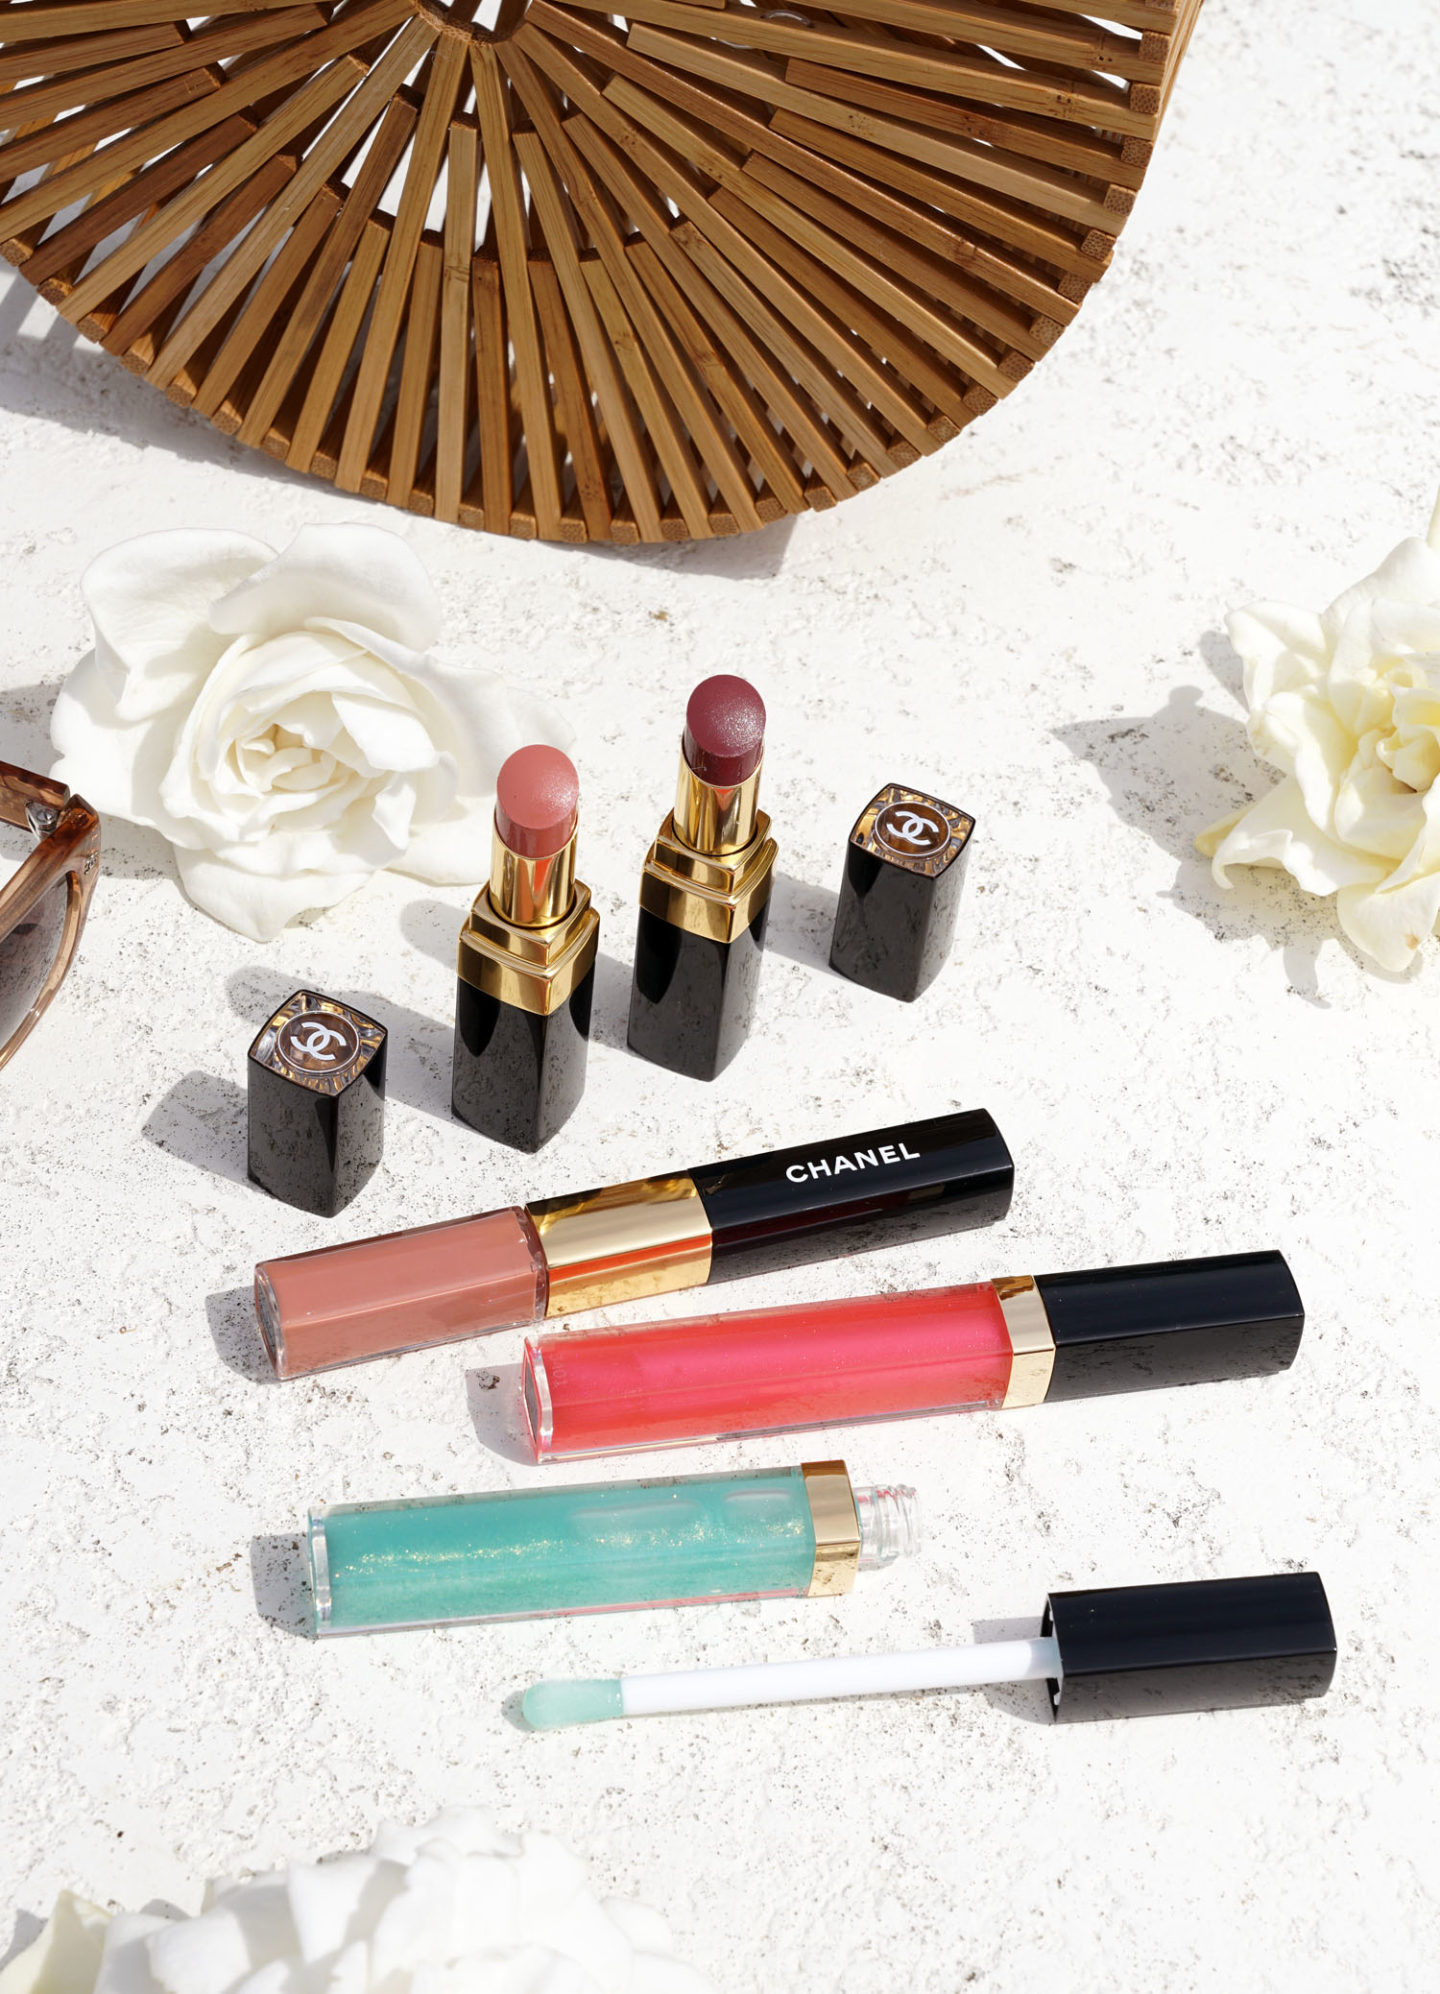 Chanel Cruise 2019 Beauty Lips Rouge Coco Flash and Gloss | The Beauty Look Book